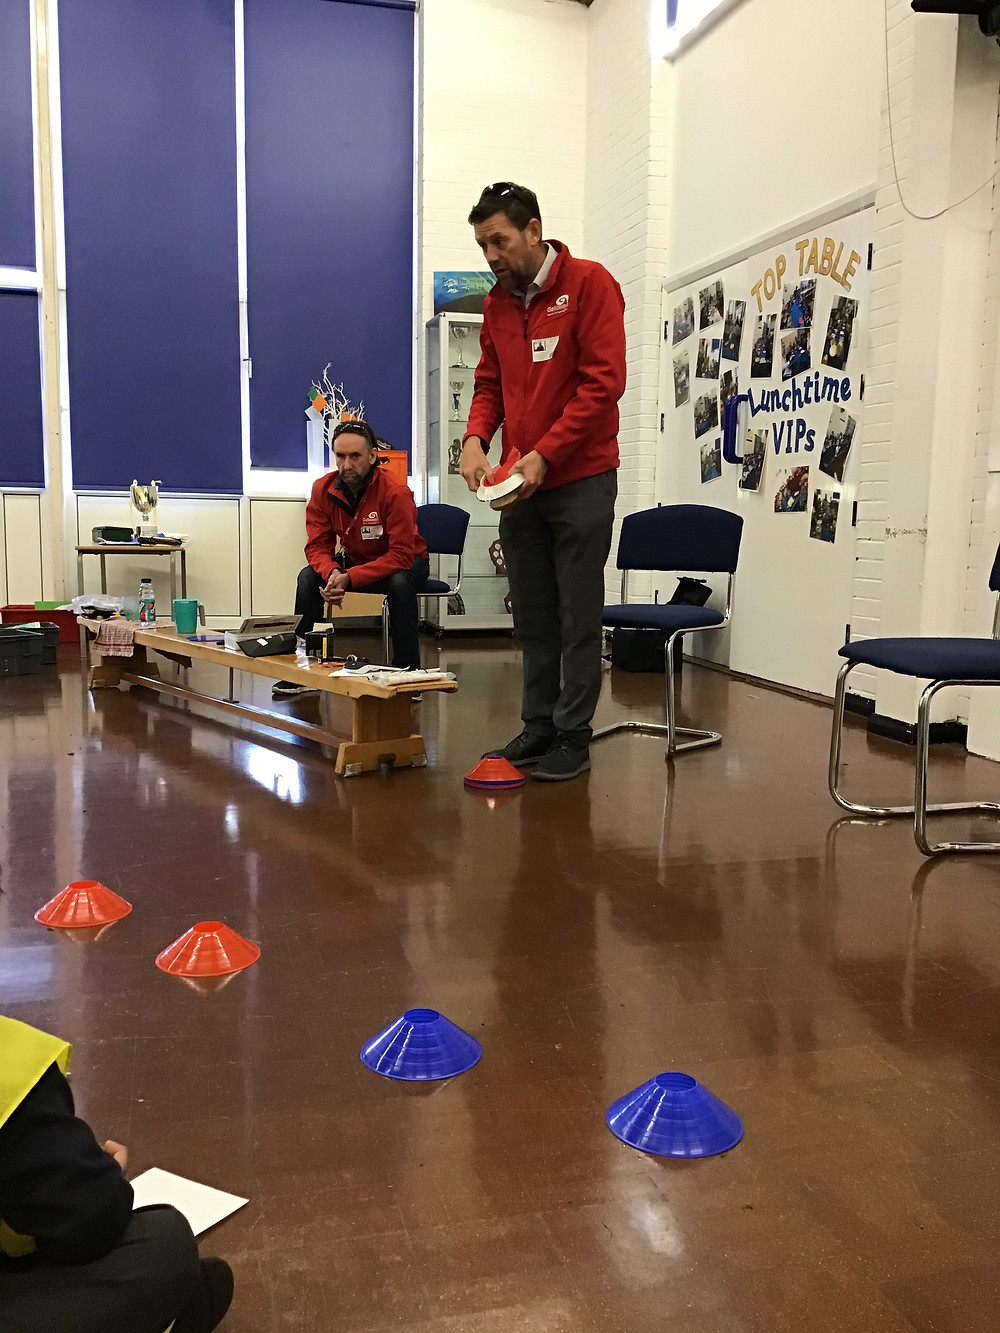 Photo shows Stuart (standing) and James (sitting) at the front of the assembly hall. Stuart is demonstrating a piece of equipment. To the left of him is a bench, with visual tools. Stuart is stood behind a red cone. There are also red and blue cones 2m in front of him.